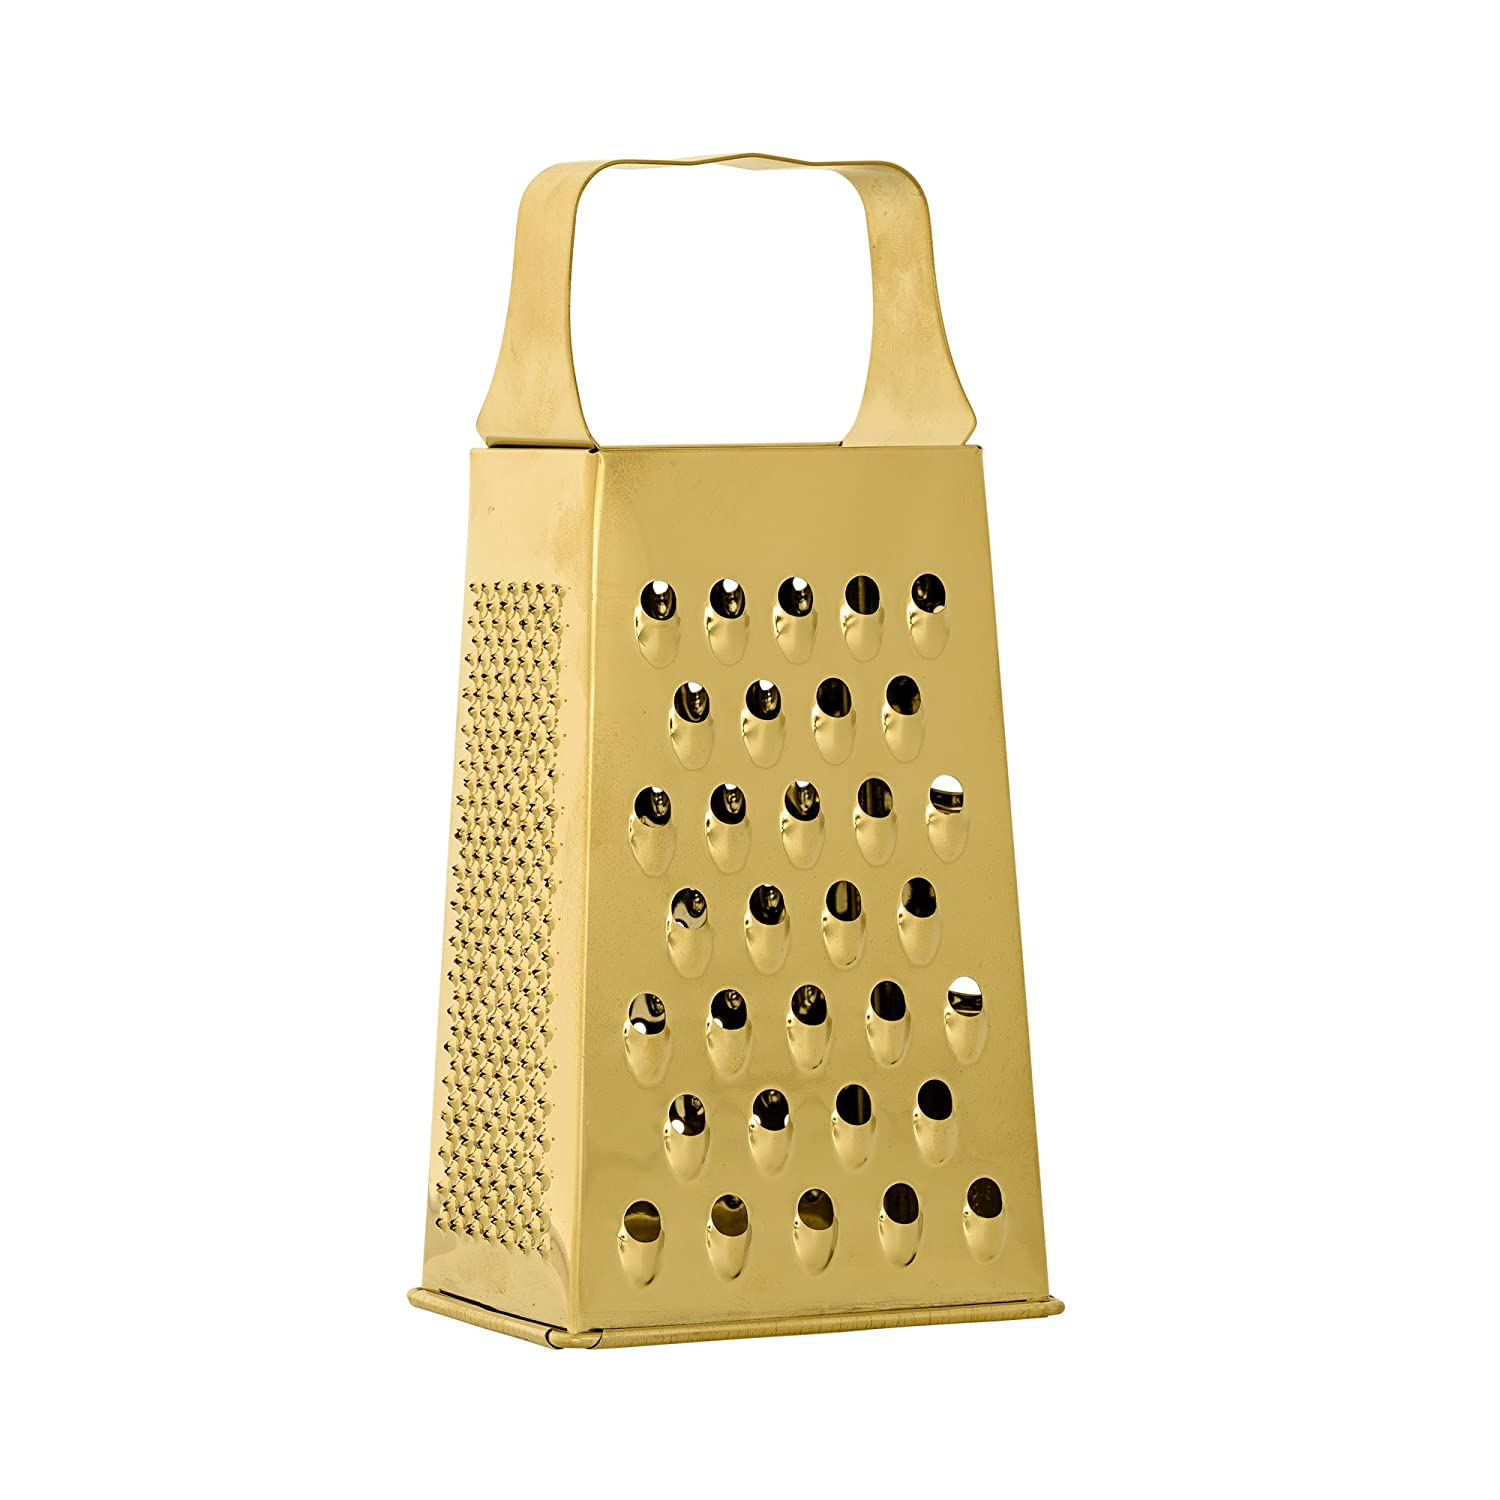 Bloomingville Gold Cheese Grater